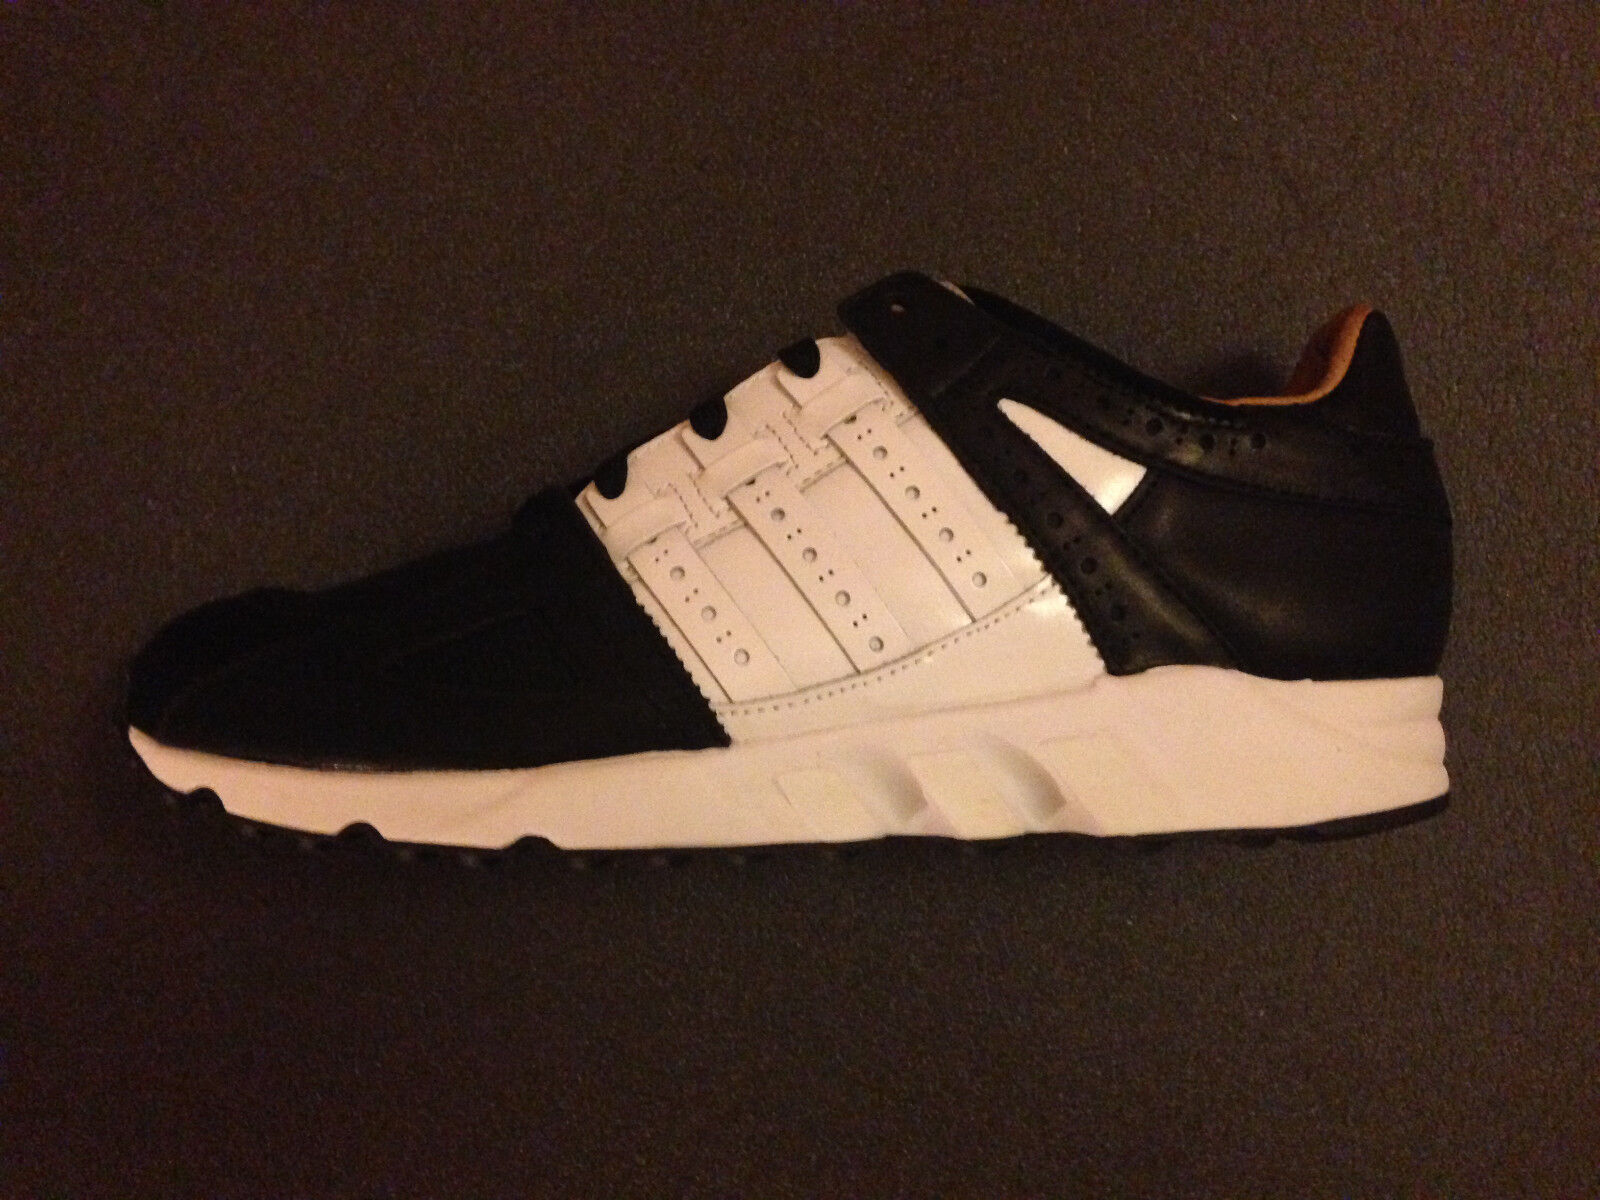 Adidas Equipment RNG Guidance 93 x SNS EQT new in box US 11,5 UK 11 FR 46 SALE❗❗